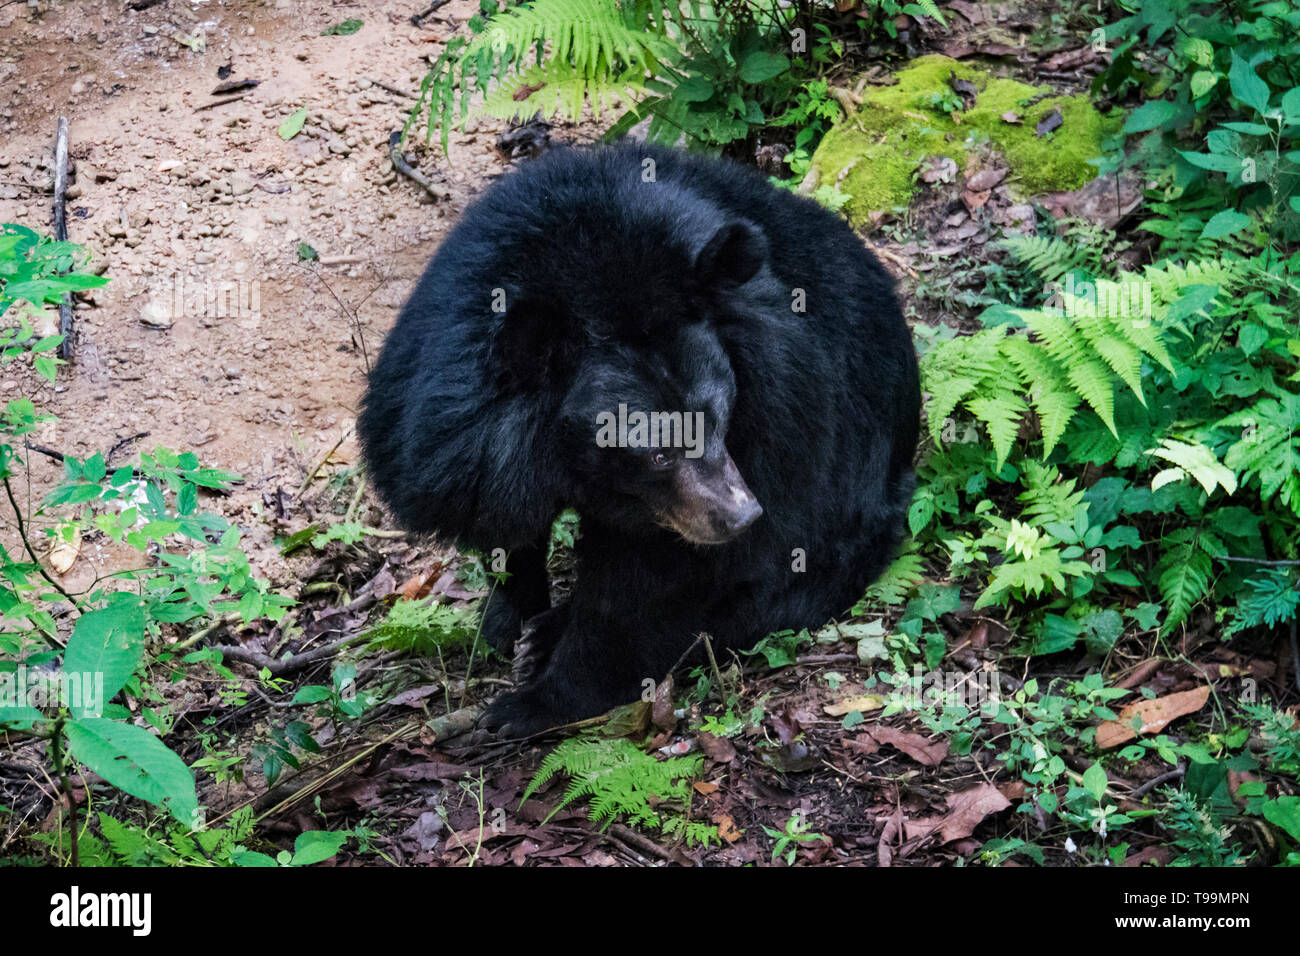 A Himalayan black bear standing. Asian black bear Ursus thibetanus also known as the moon bear and the white-chested bear relaxing in the zoo - Stock Image